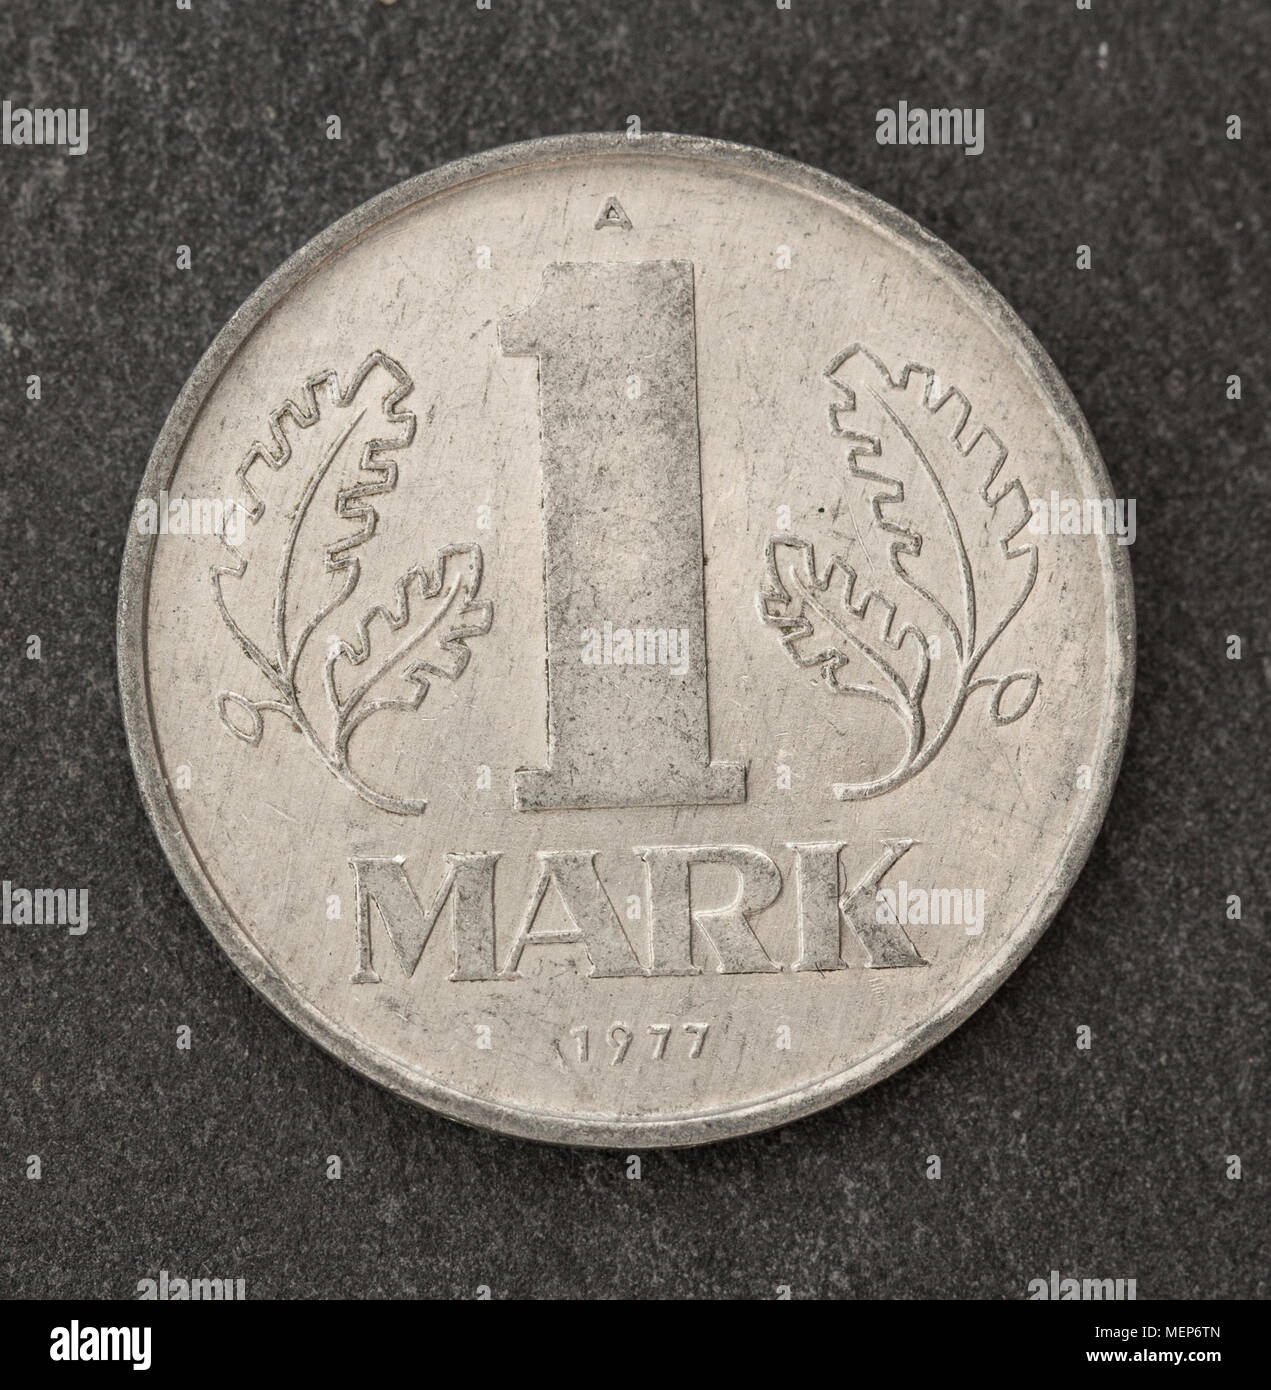 old germany mark coin - Stock Image